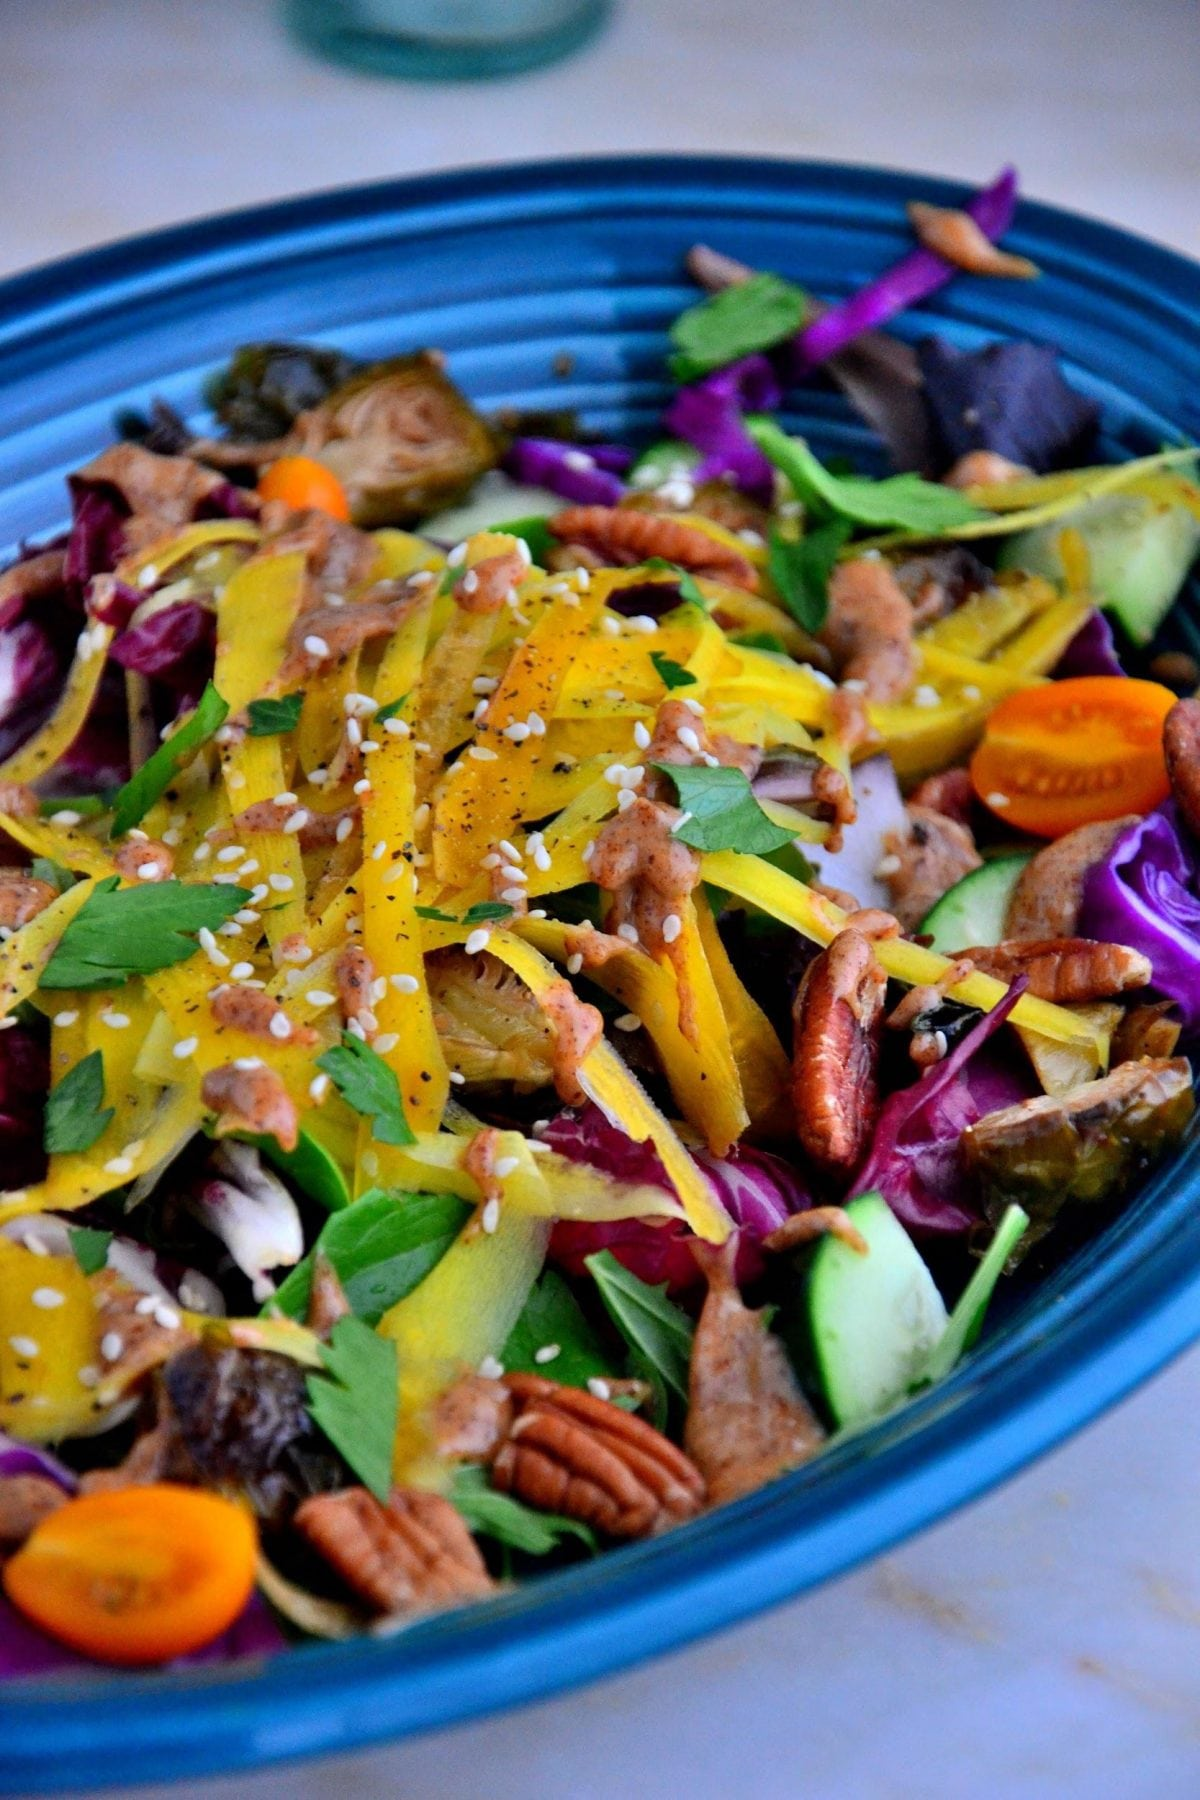 Rainbow Carrot and Brussels Sprout Salad with Pecans